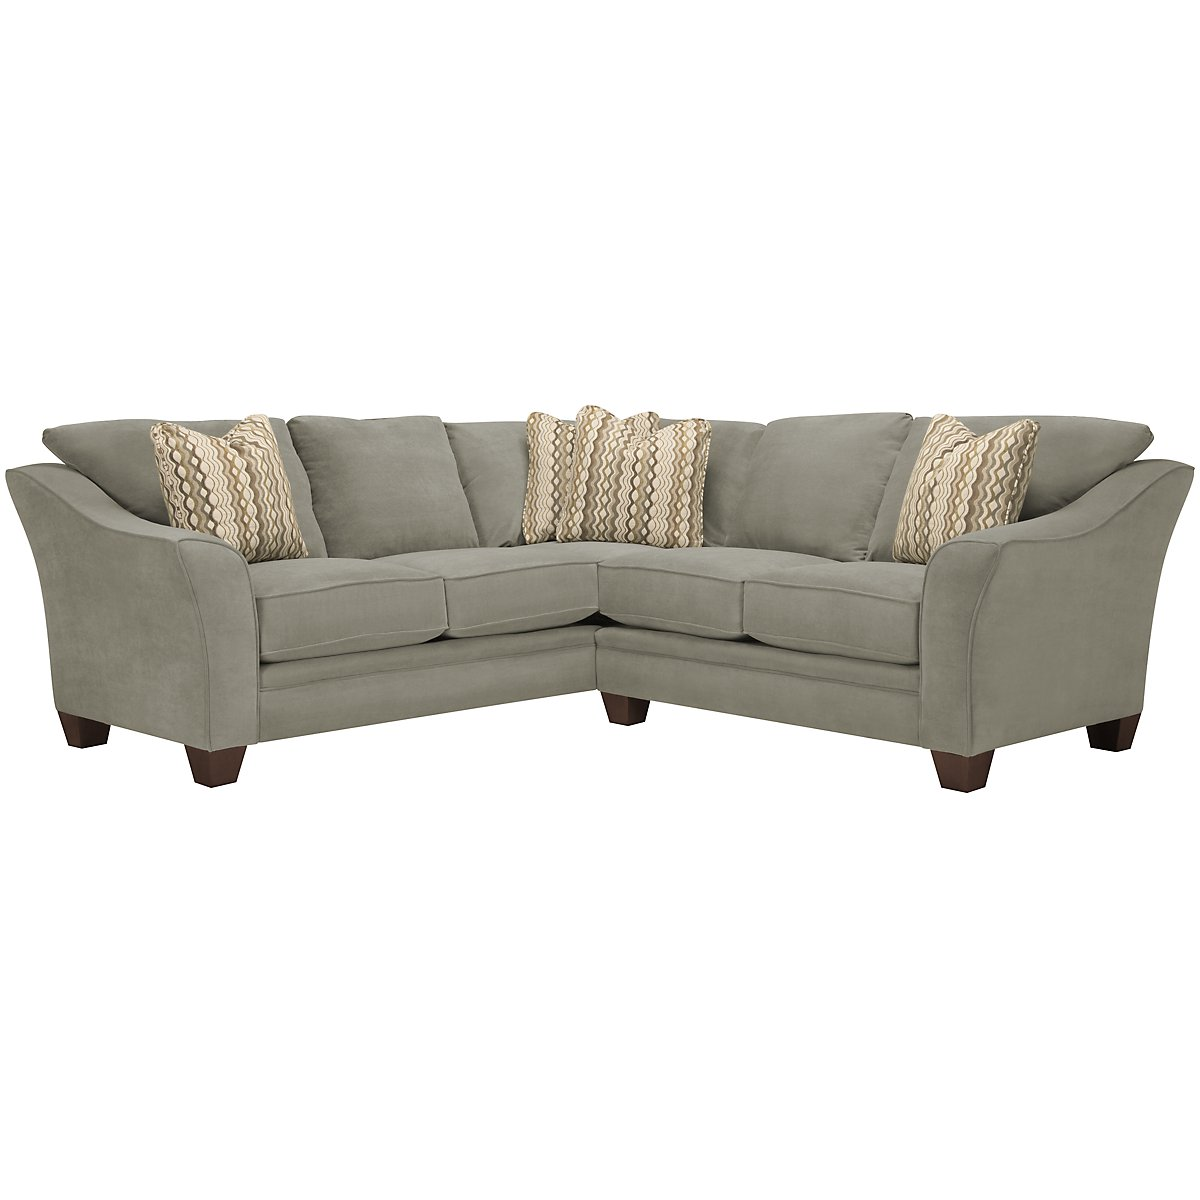 Grant2 Light Green Microfiber Two-Arm Sectional